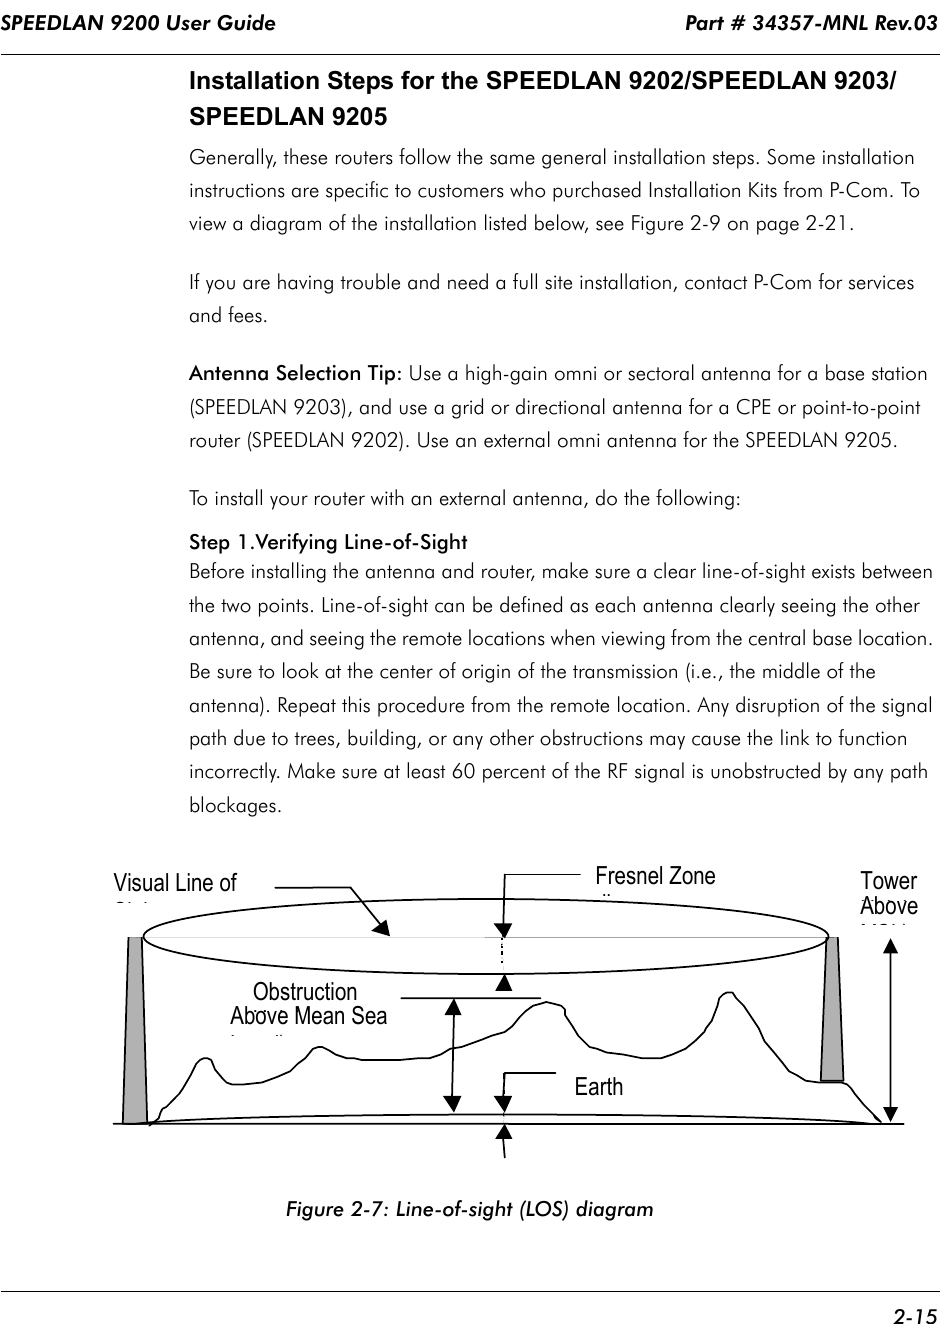 SPEEDLAN 9200 User Guide                                                                   Part # 34357-MNL Rev.03      2-15                                                                                                                                                              Installation Steps for the SPEEDLAN 9202/SPEEDLAN 9203/SPEEDLAN 9205Generally, these routers follow the same general installation steps. Some installation instructions are specific to customers who purchased Installation Kits from P-Com. To view a diagram of the installation listed below, see Figure 2-9 on page 2-21.  If you are having trouble and need a full site installation, contact P-Com for services and fees. Antenna Selection Tip: Use a high-gain omni or sectoral antenna for a base station (SPEEDLAN 9203), and use a grid or directional antenna for a CPE or point-to-point router (SPEEDLAN 9202). Use an external omni antenna for the SPEEDLAN 9205. To install your router with an external antenna, do the following: Step 1.Verifying Line-of-Sight Before installing the antenna and router, make sure a clear line-of-sight exists between the two points. Line-of-sight can be defined as each antenna clearly seeing the other antenna, and seeing the remote locations when viewing from the central base location. Be sure to look at the center of origin of the transmission (i.e., the middle of the antenna). Repeat this procedure from the remote location. Any disruption of the signal path due to trees, building, or any other obstructions may cause the link to function incorrectly. Make sure at least 60 percent of the RF signal is unobstructed by any path blockages. Figure 2-7: Line-of-sight (LOS) diagramVisual Line of Si hFresnel Zone diObstruction HihAbove Mean Sea Ll)Earth Tower HihAbove MSL)